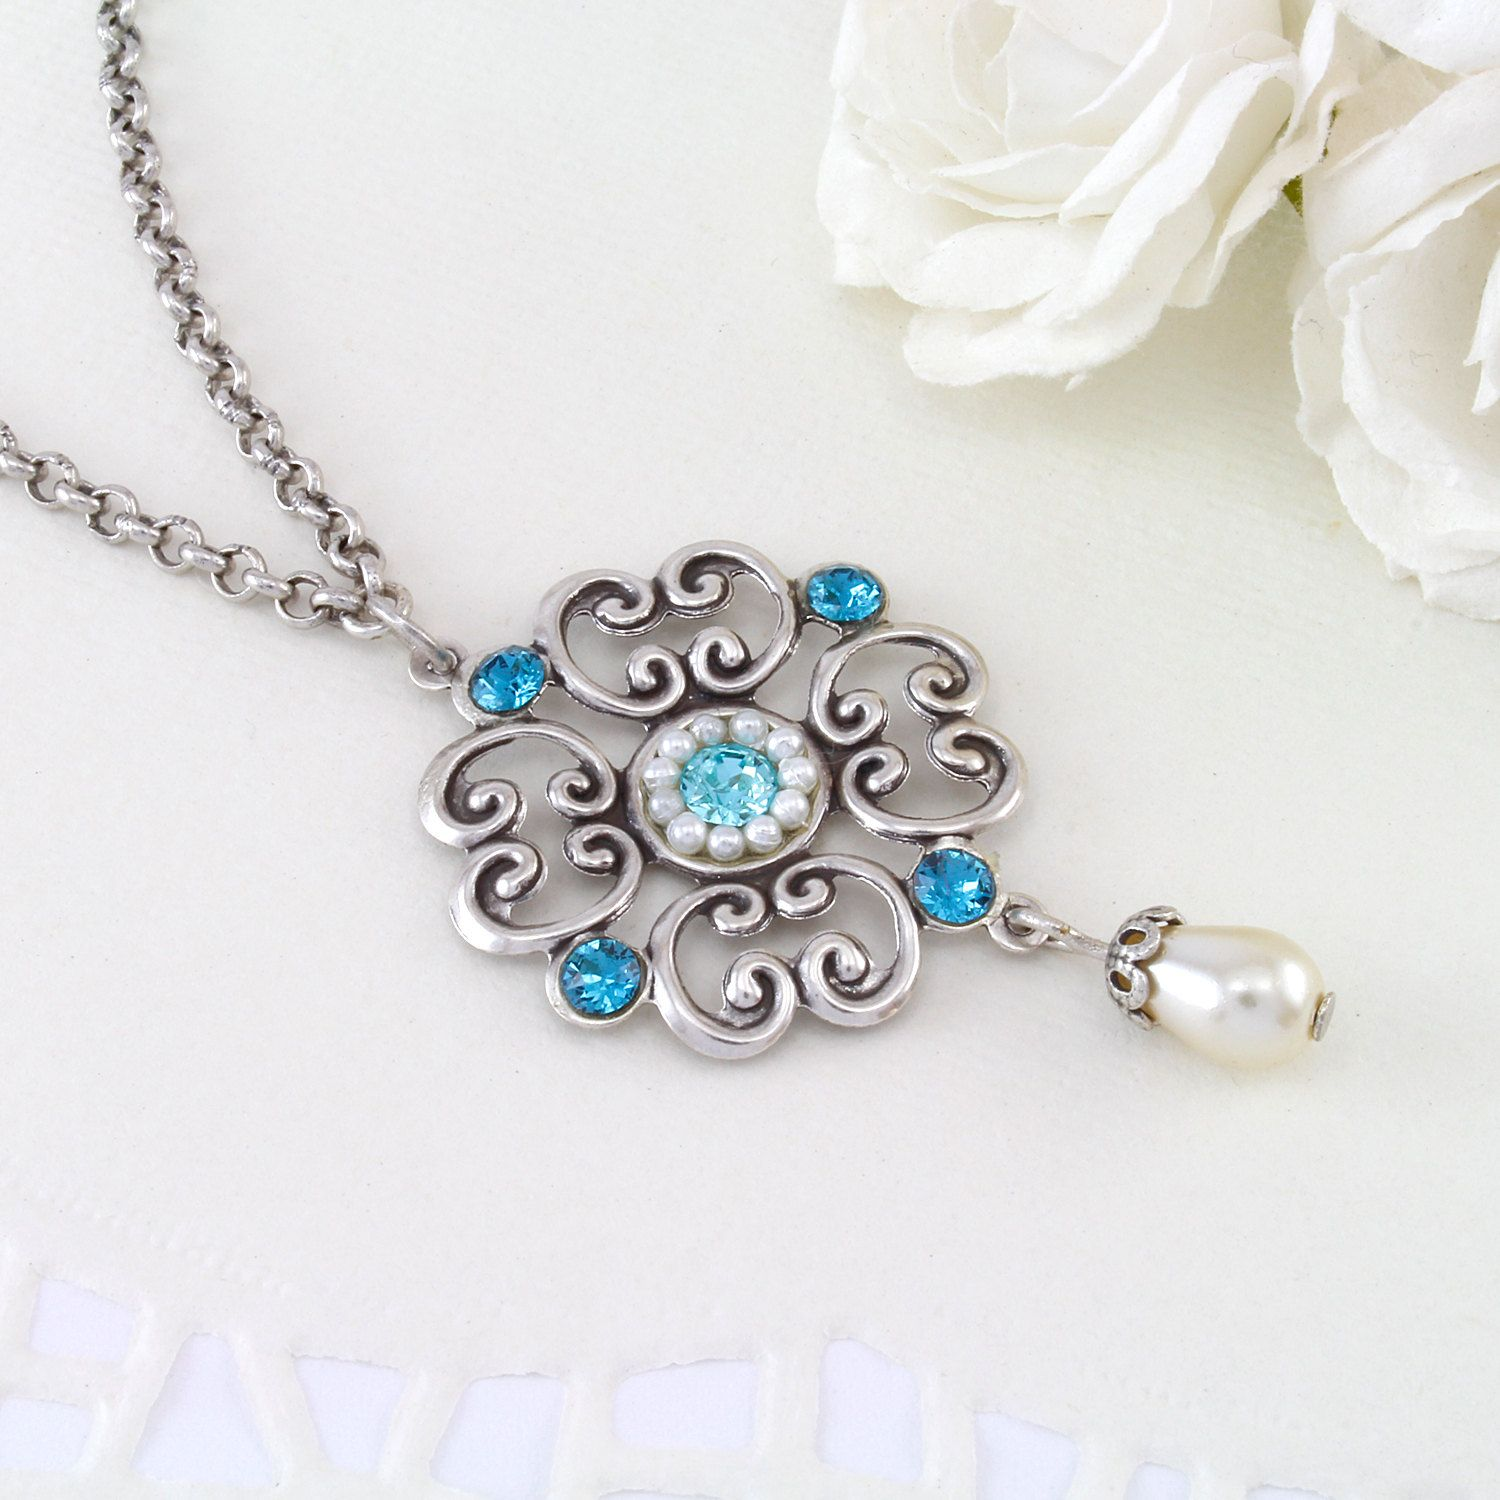 25 OFF Blue wedding jewelry Blue wedding necklace Blue wedding